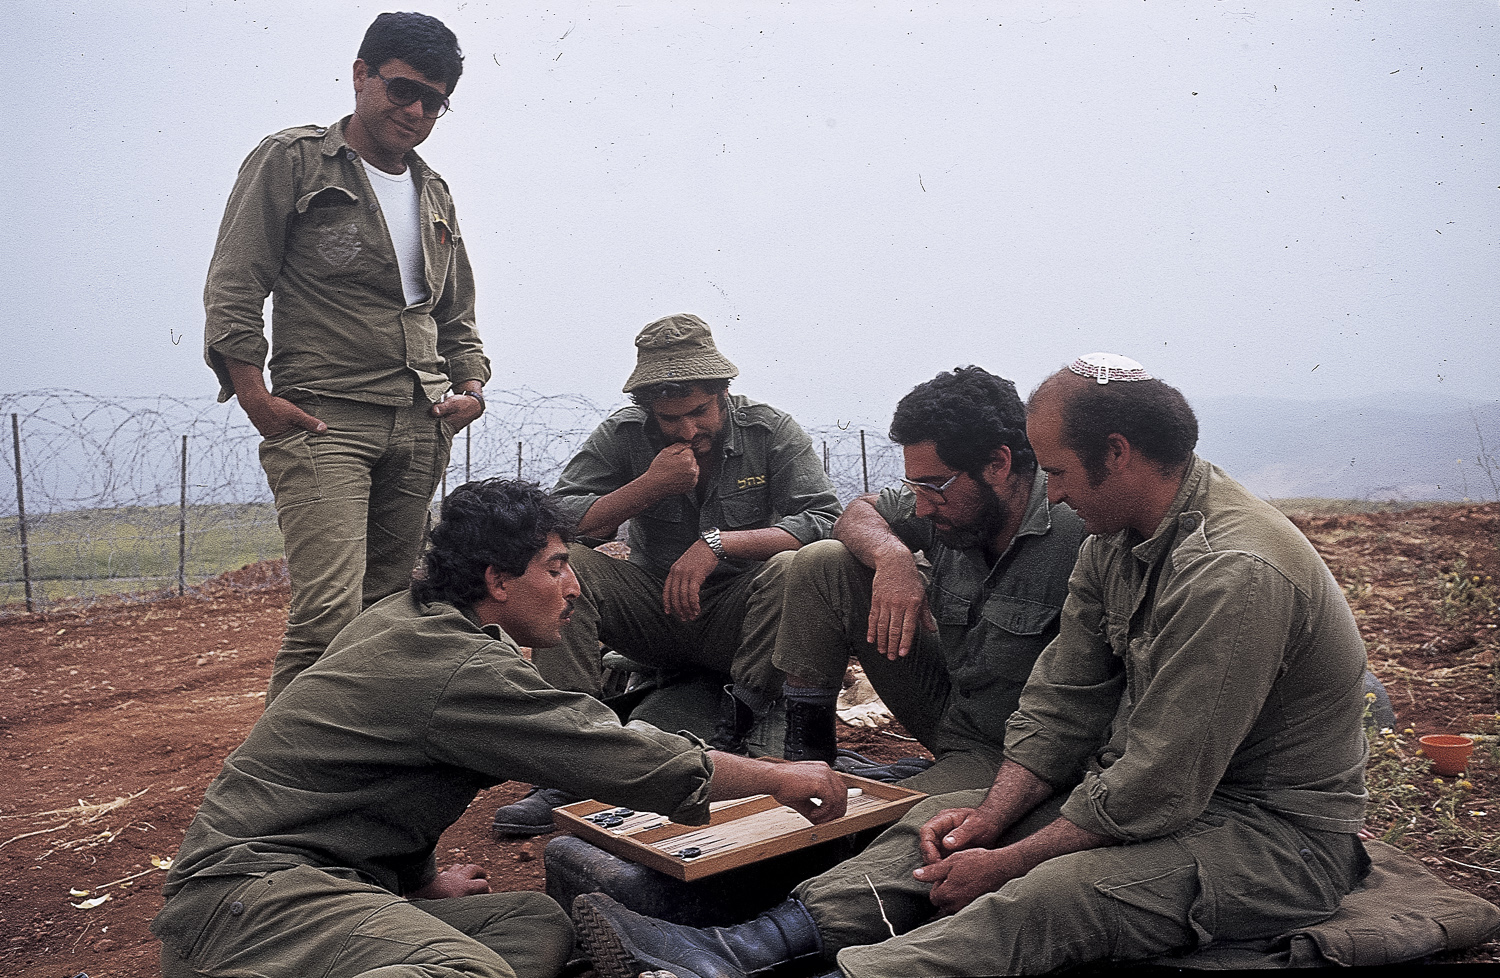 Break - Golan Heights, 1986